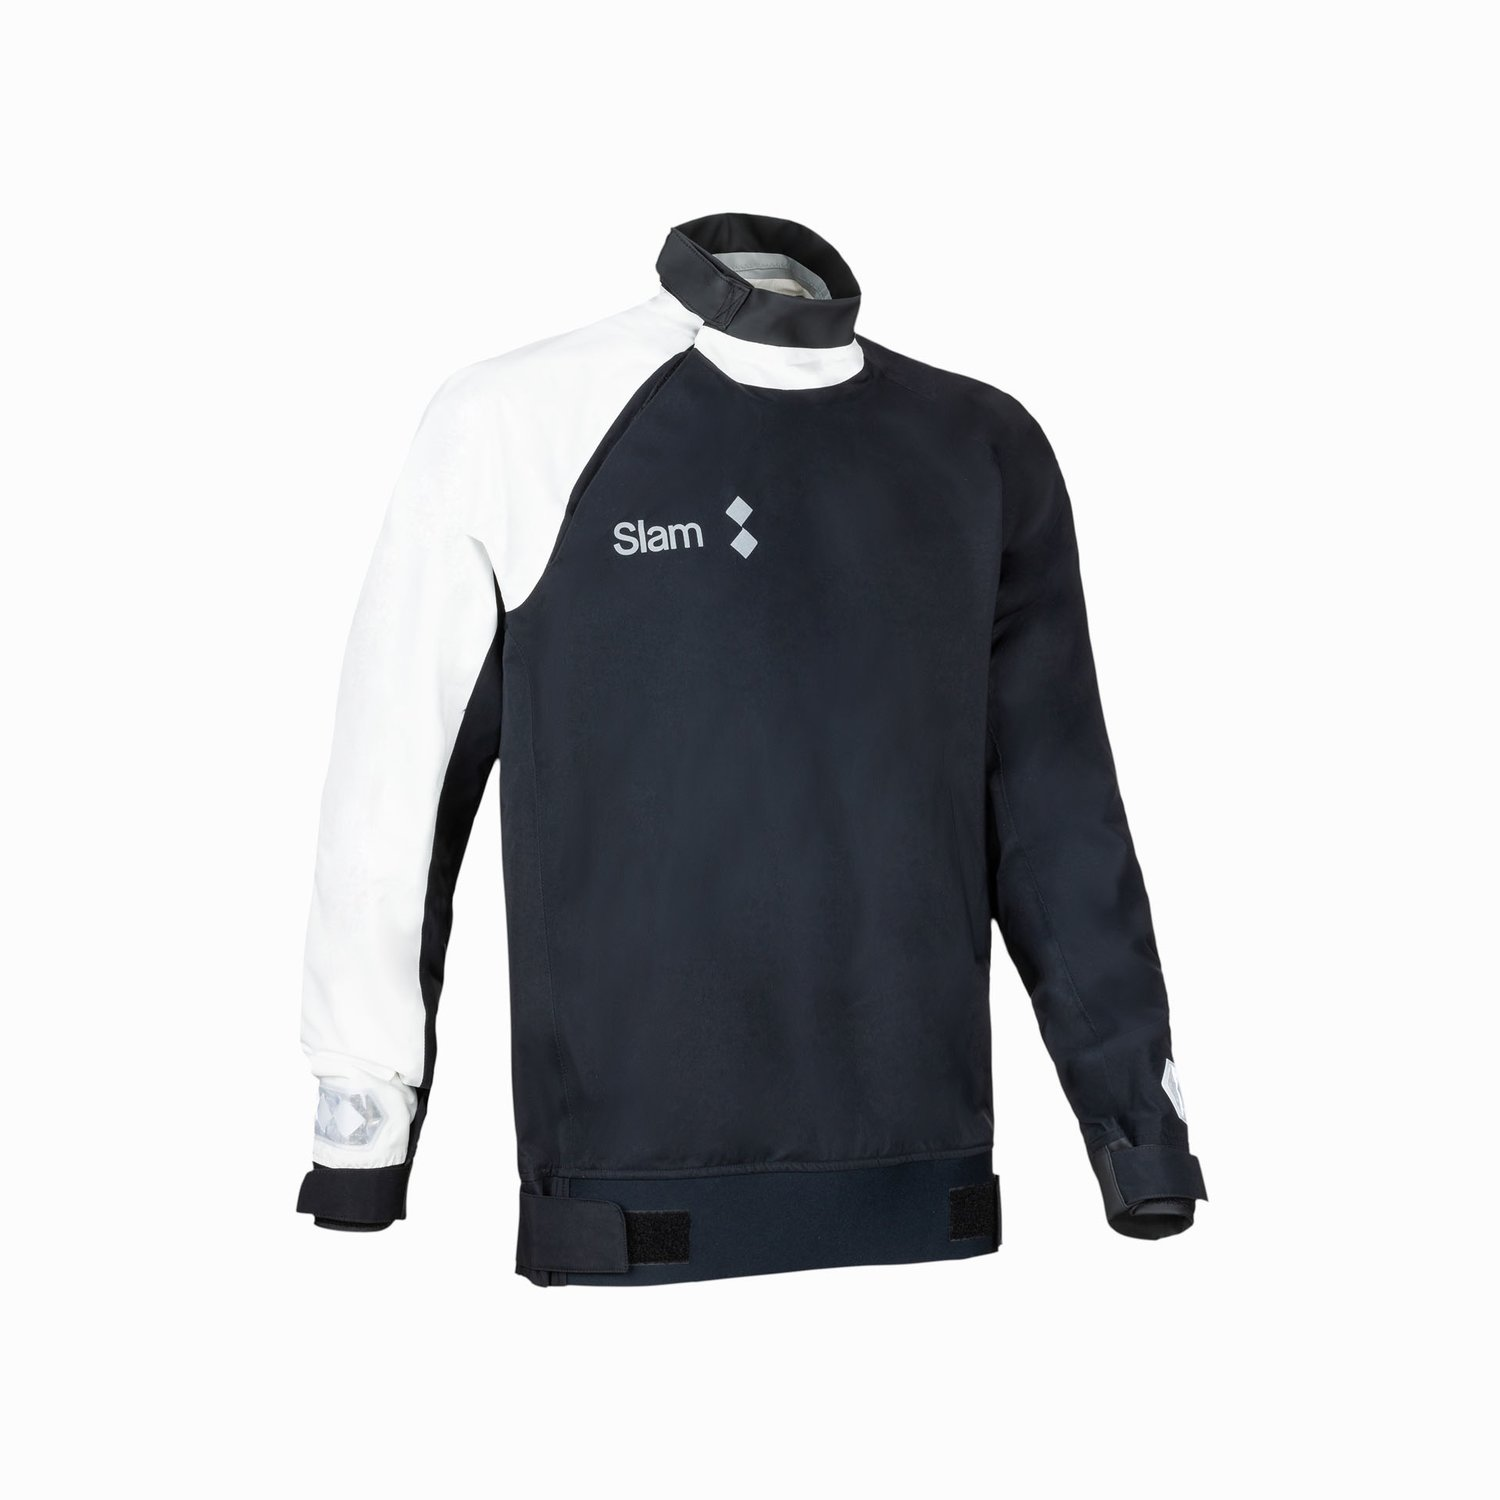 WIN-D 3 COASTAL SPRAY TOP - Nero / Bianco